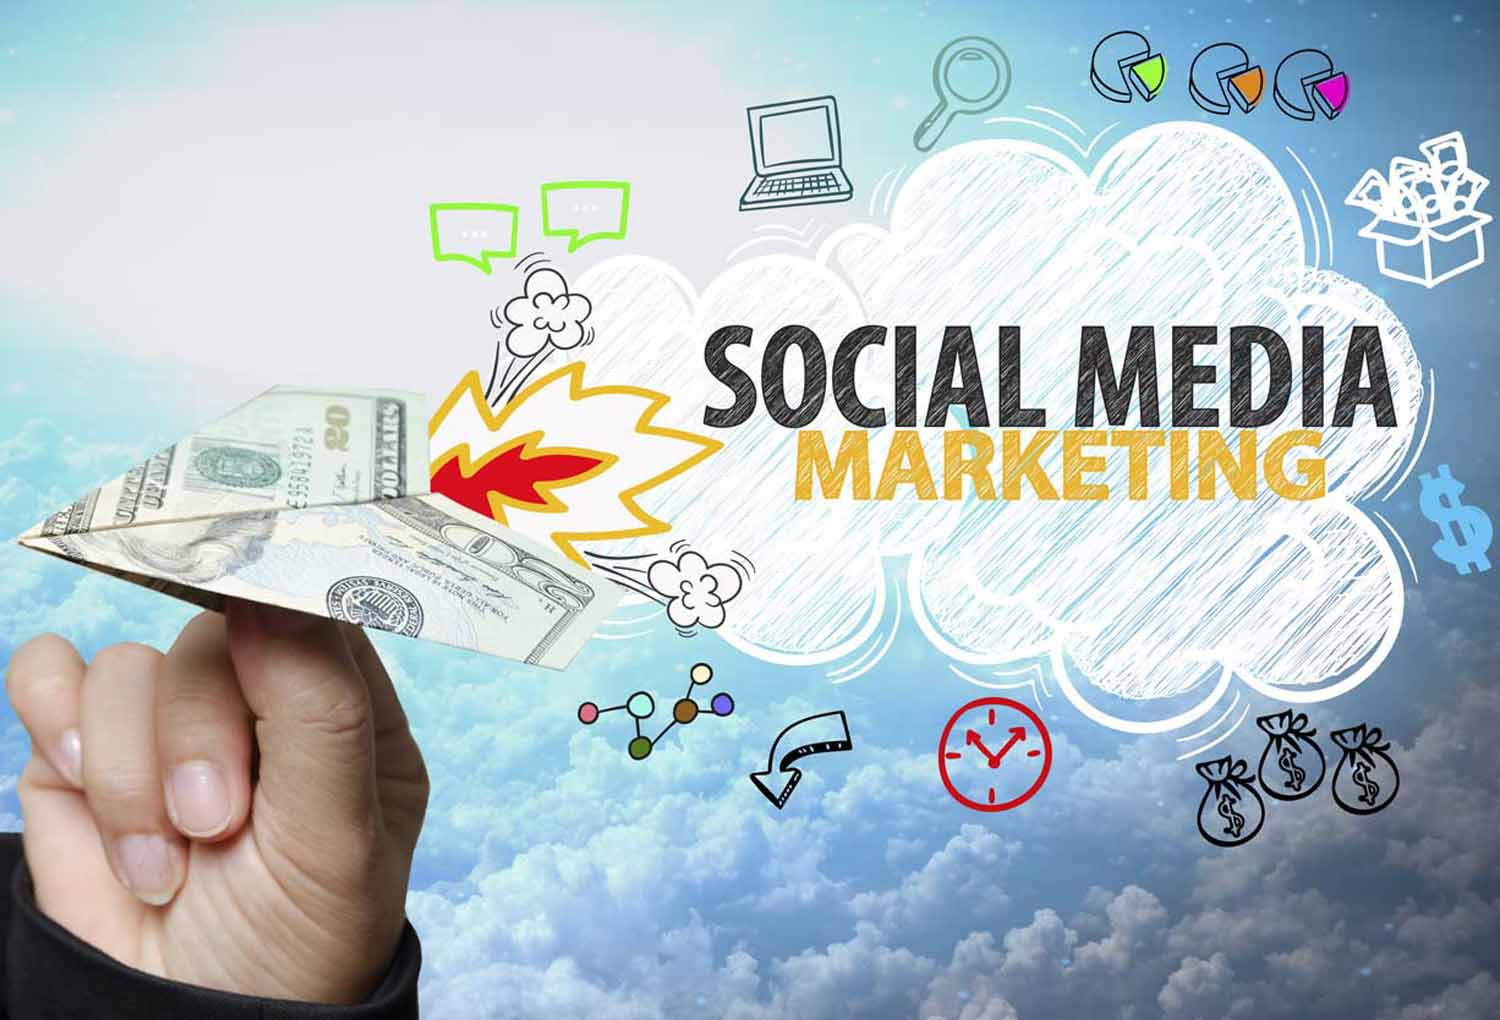 Ten benefits of SMM (social media marketing) for any business